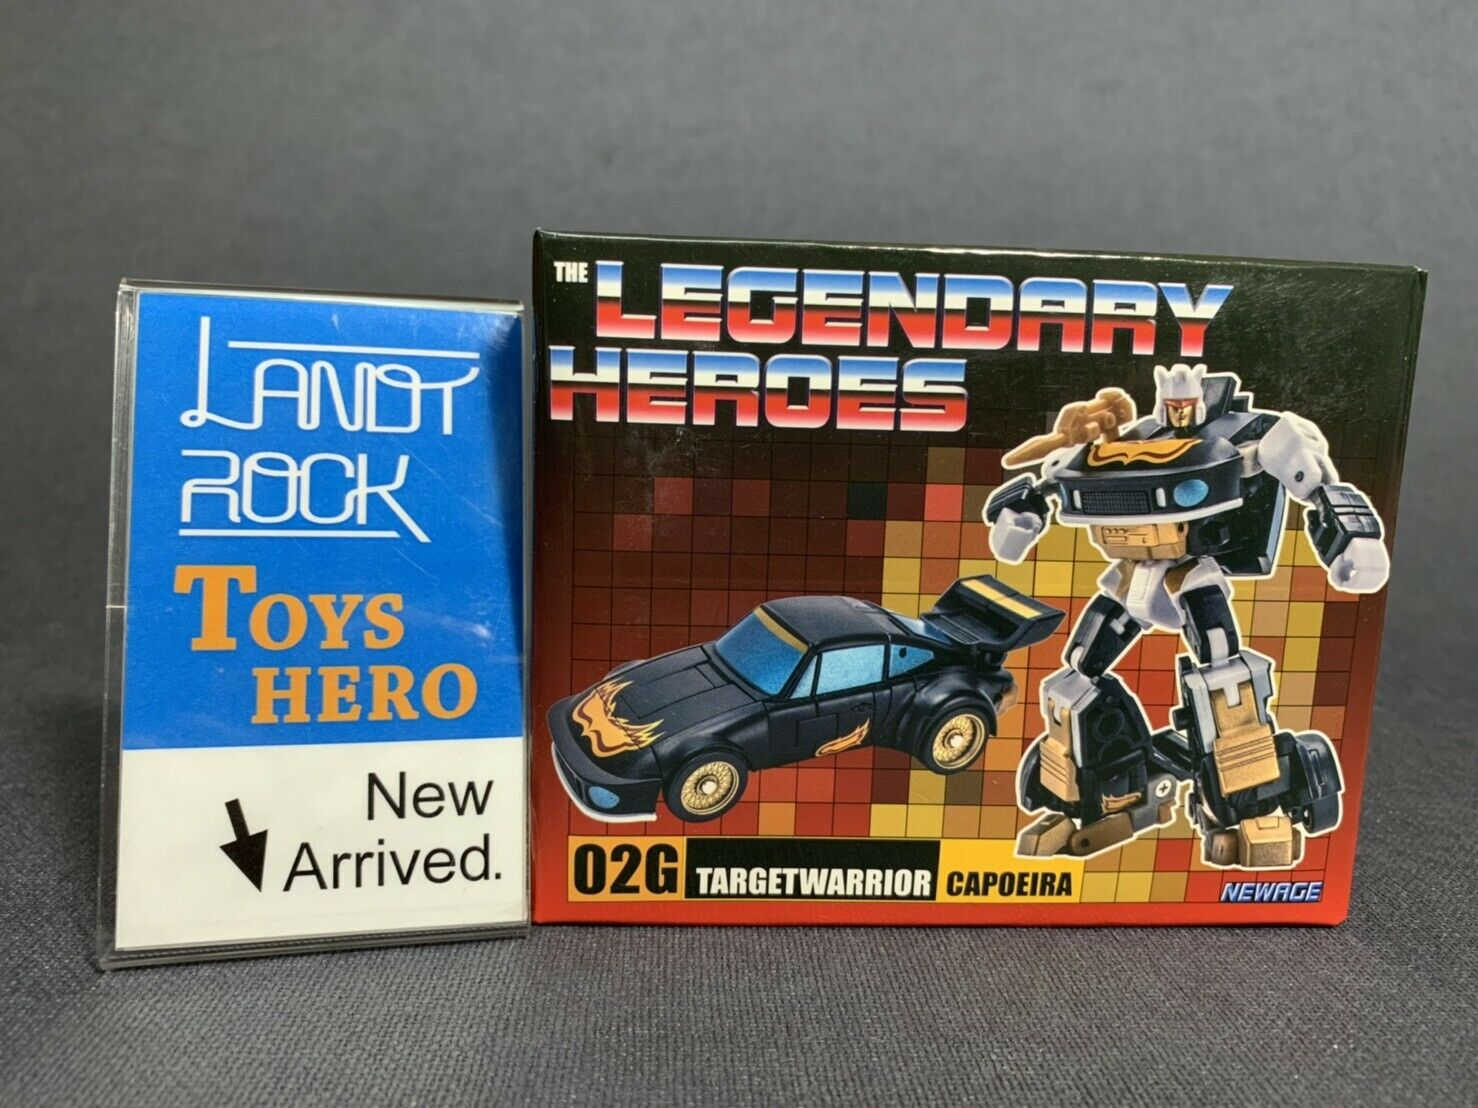 [giocattoli Hero] In He Transformers  nuovoage Target Warrior 02G Capoeira Limited ver.  consegna veloce